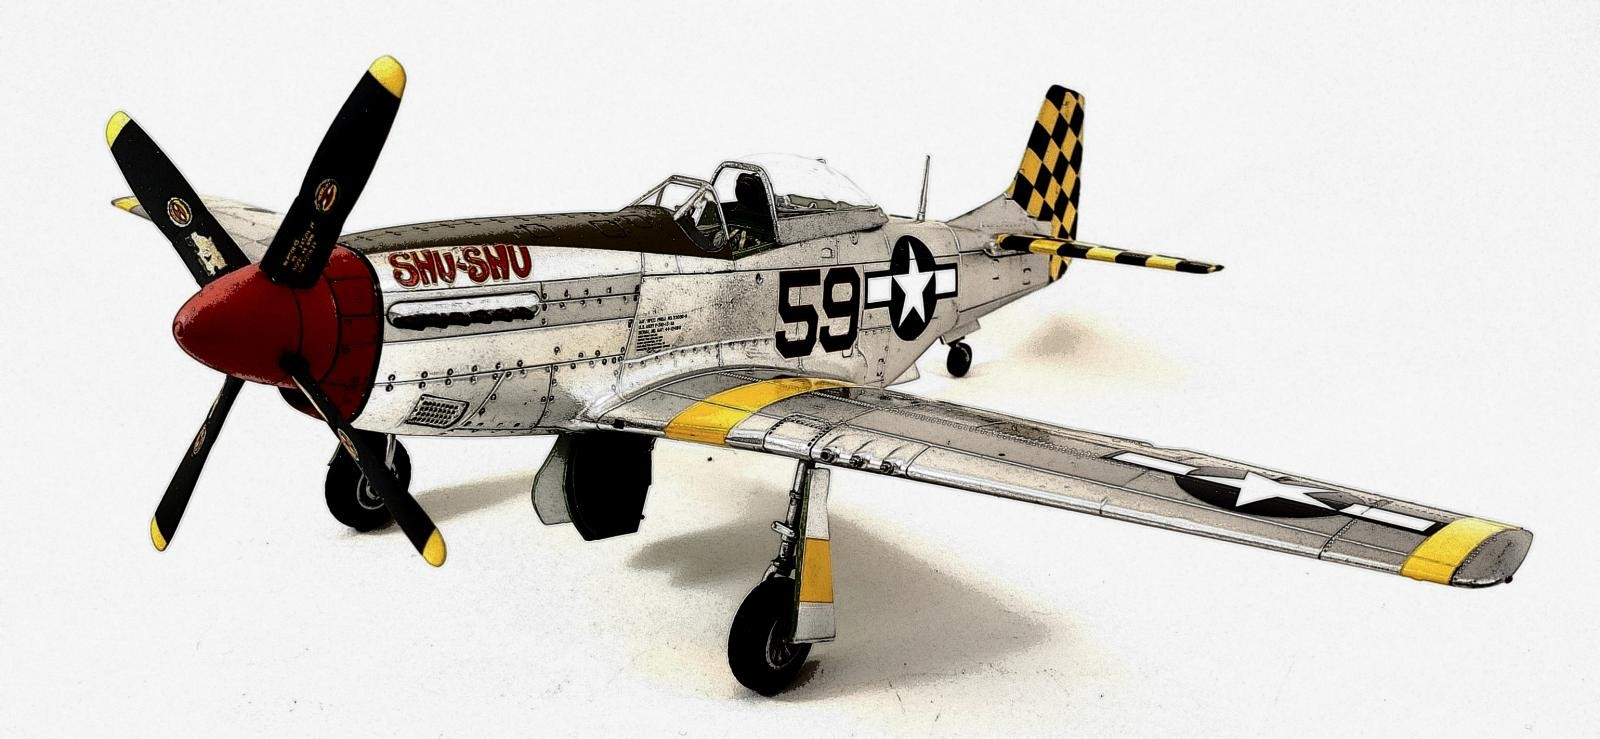 AFX05131 1:48 Airfix North American P-51D Mustang MODEL BUILDING KIT